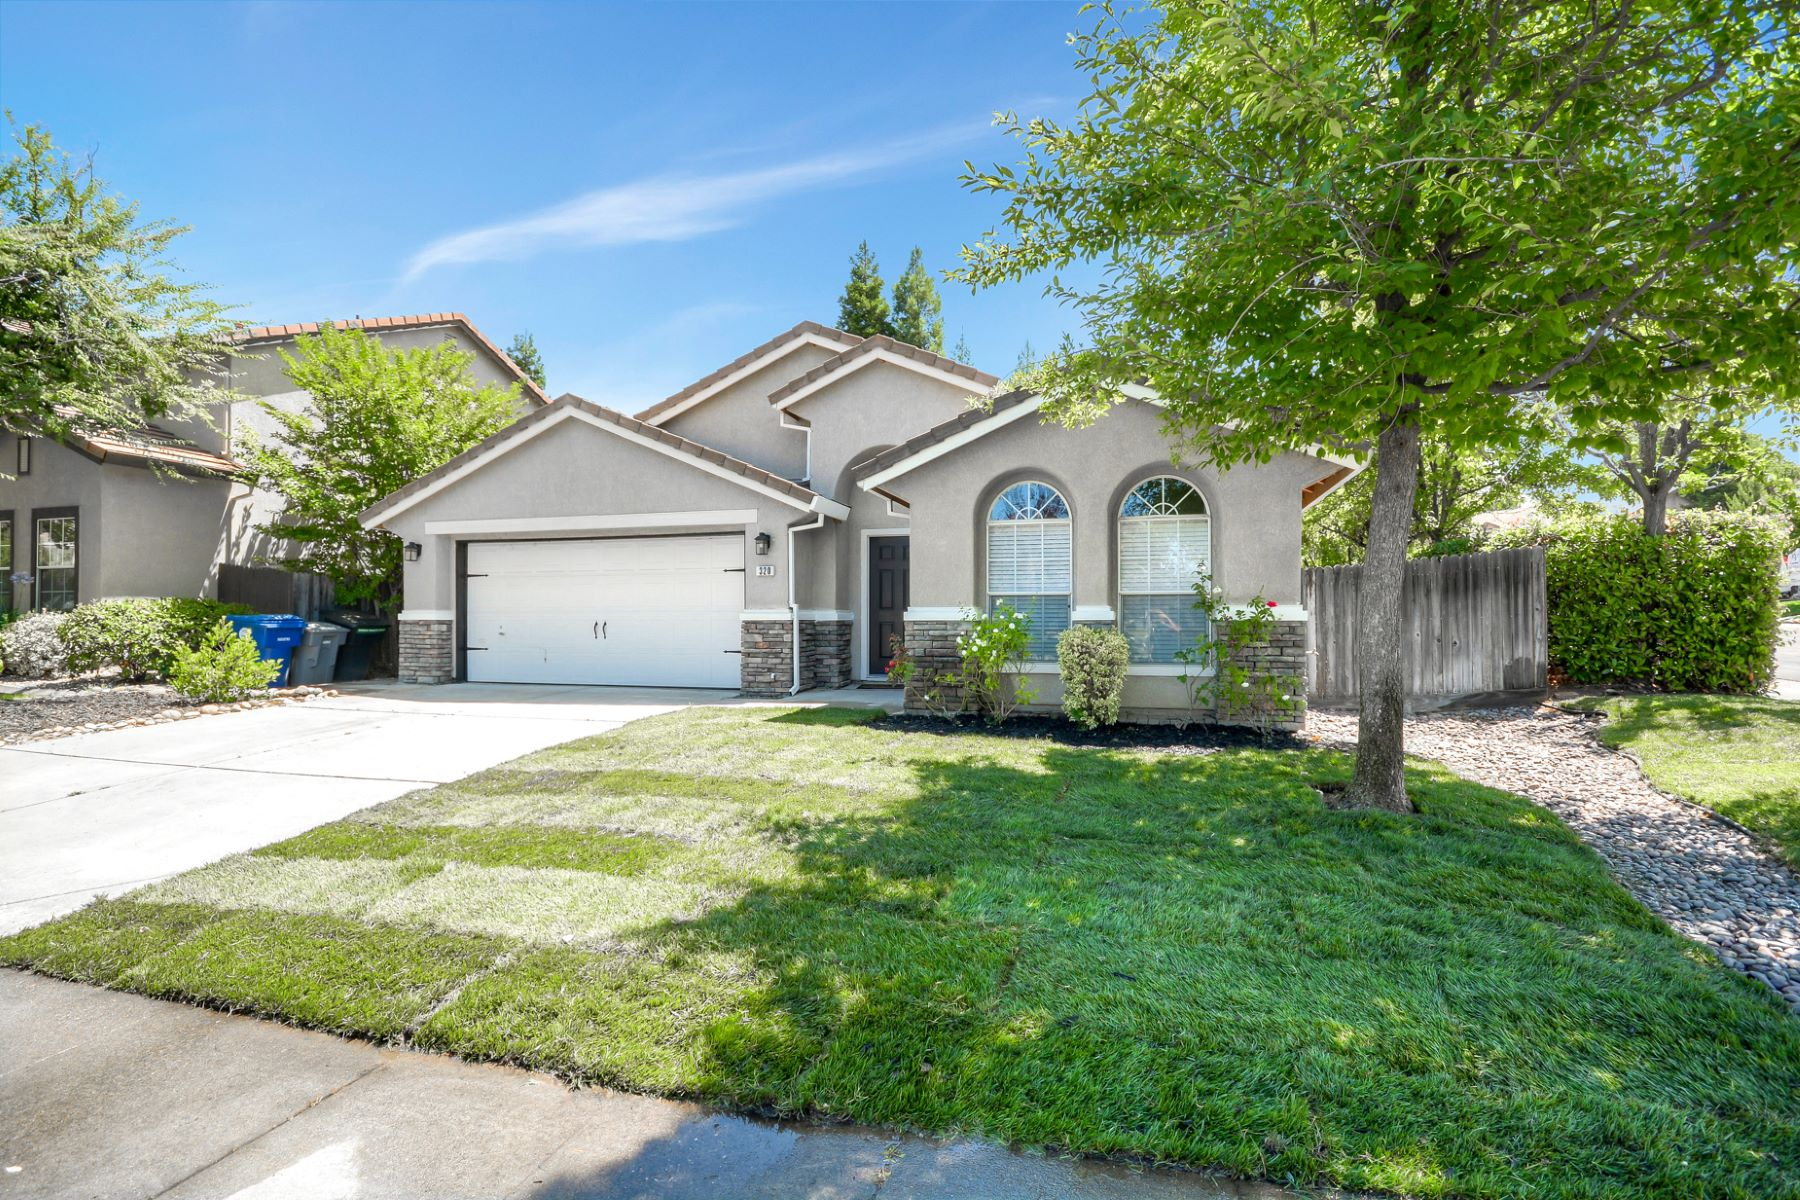 Single Family Homes for Sale at 320 Mette Ct., Folsom, CA 95630 320 Mette Ct. Folsom, California 95630 United States